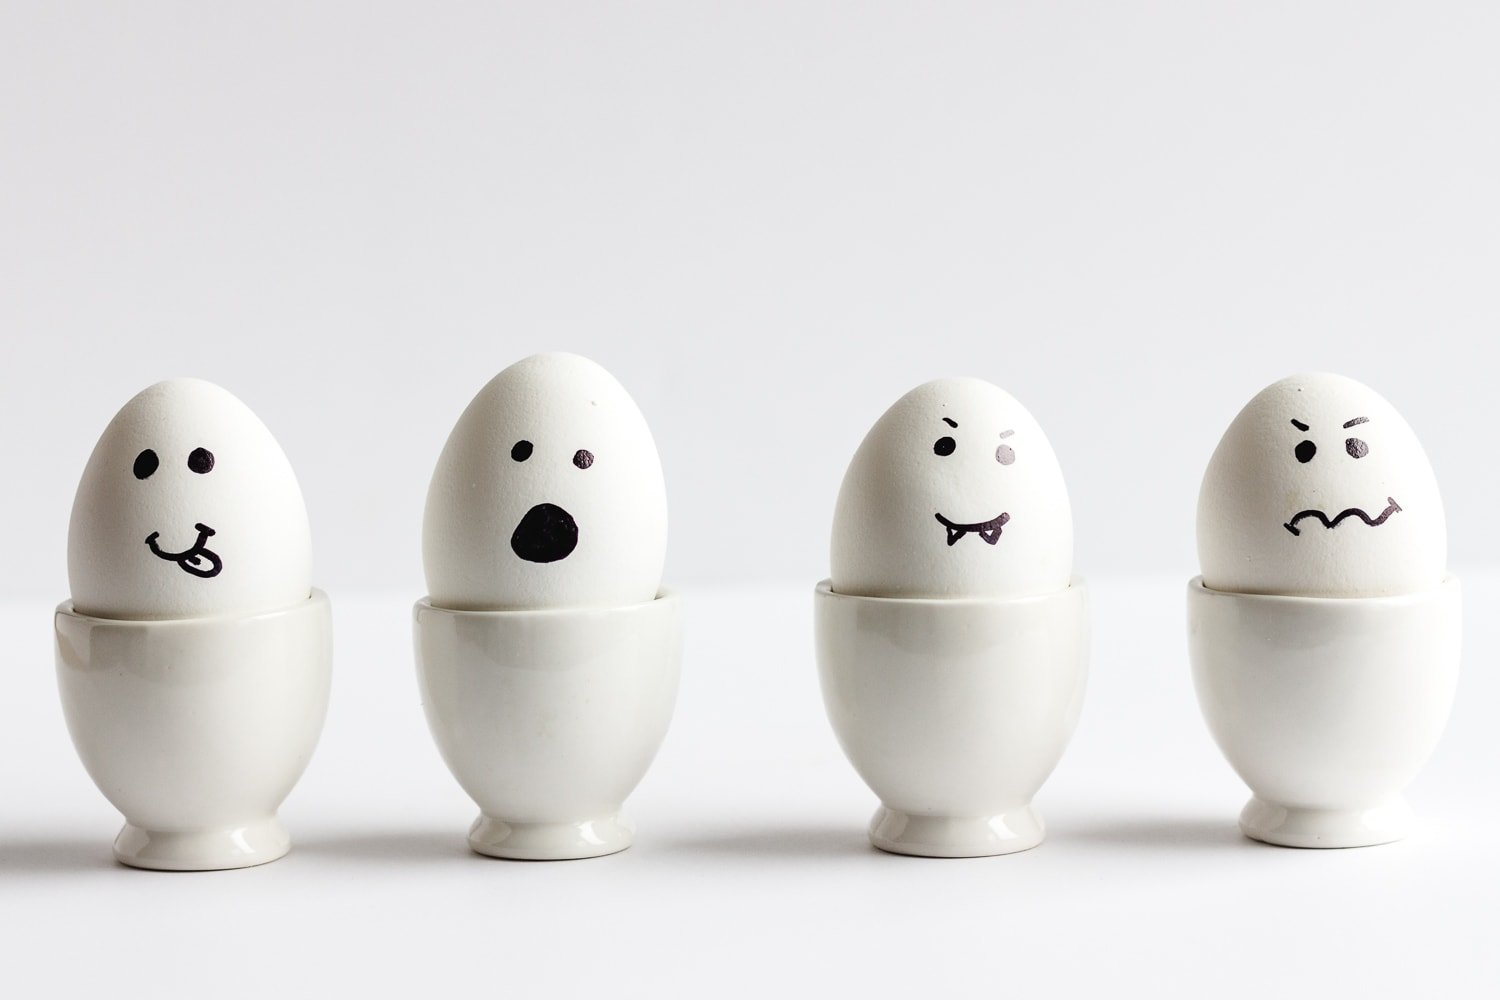 Four hardboiled eggs in white egg holders with faces drawn on to resemble Halloween ghosts.